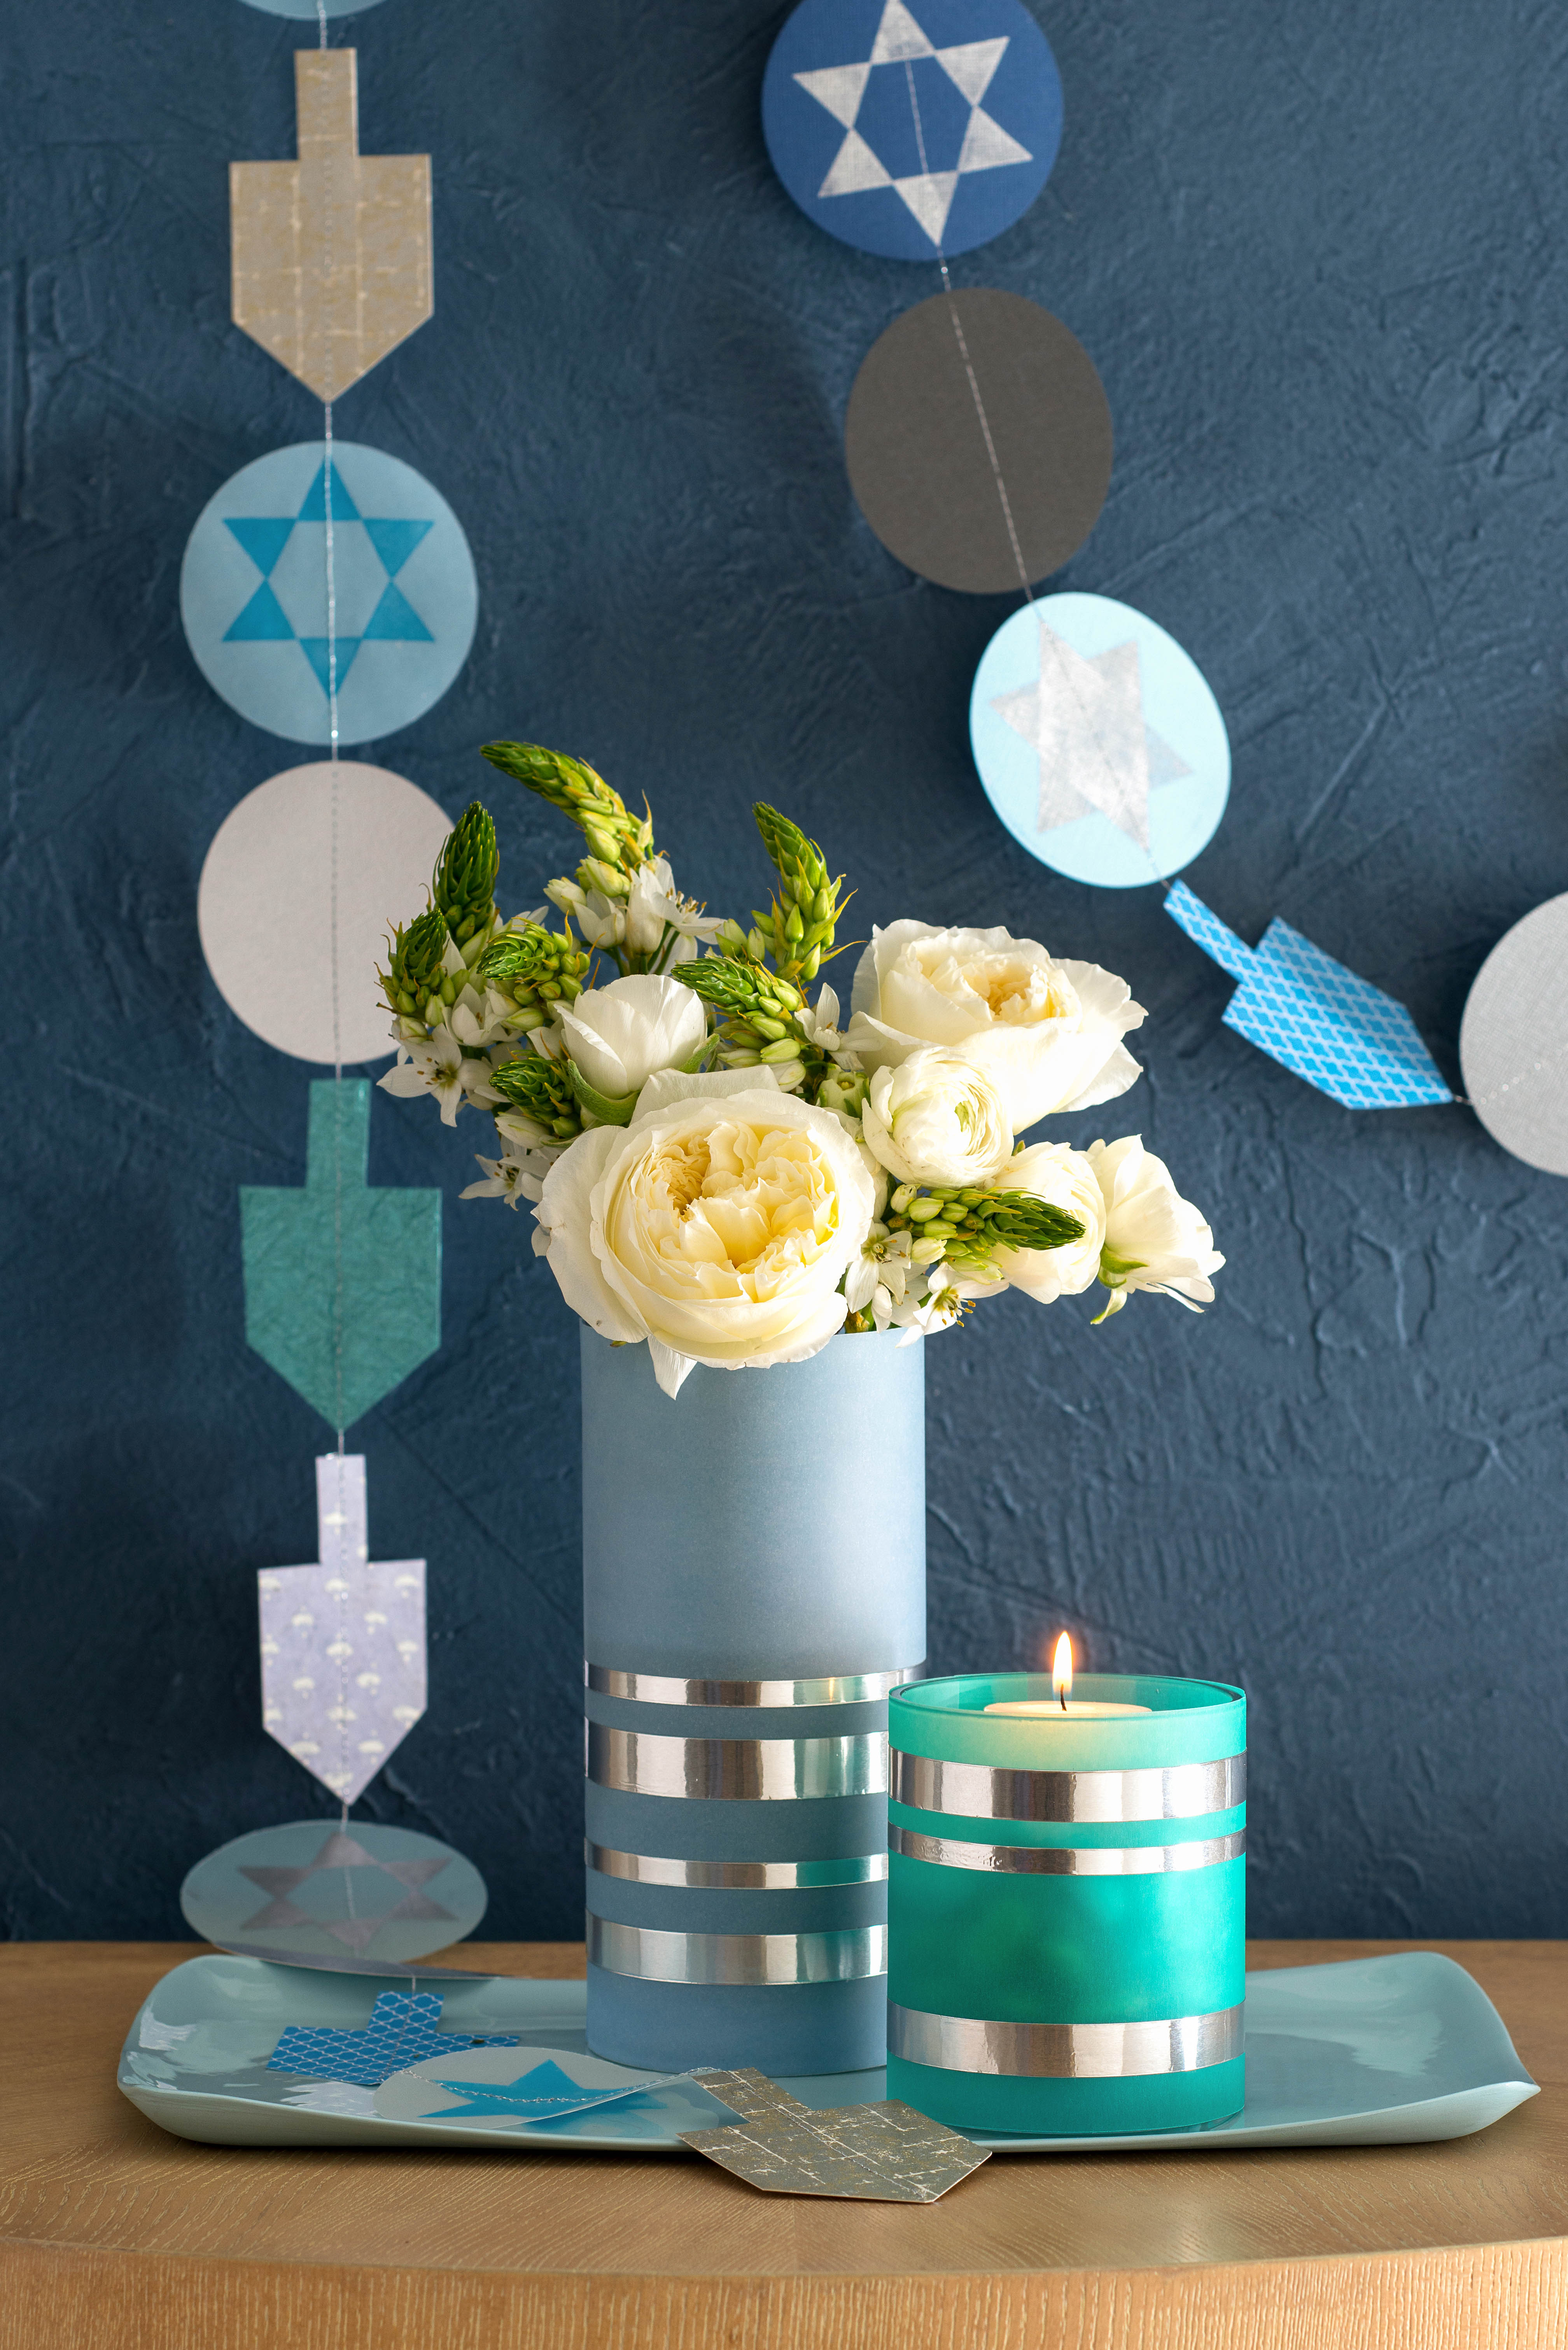 blue hanukkah decor with white flower and candle